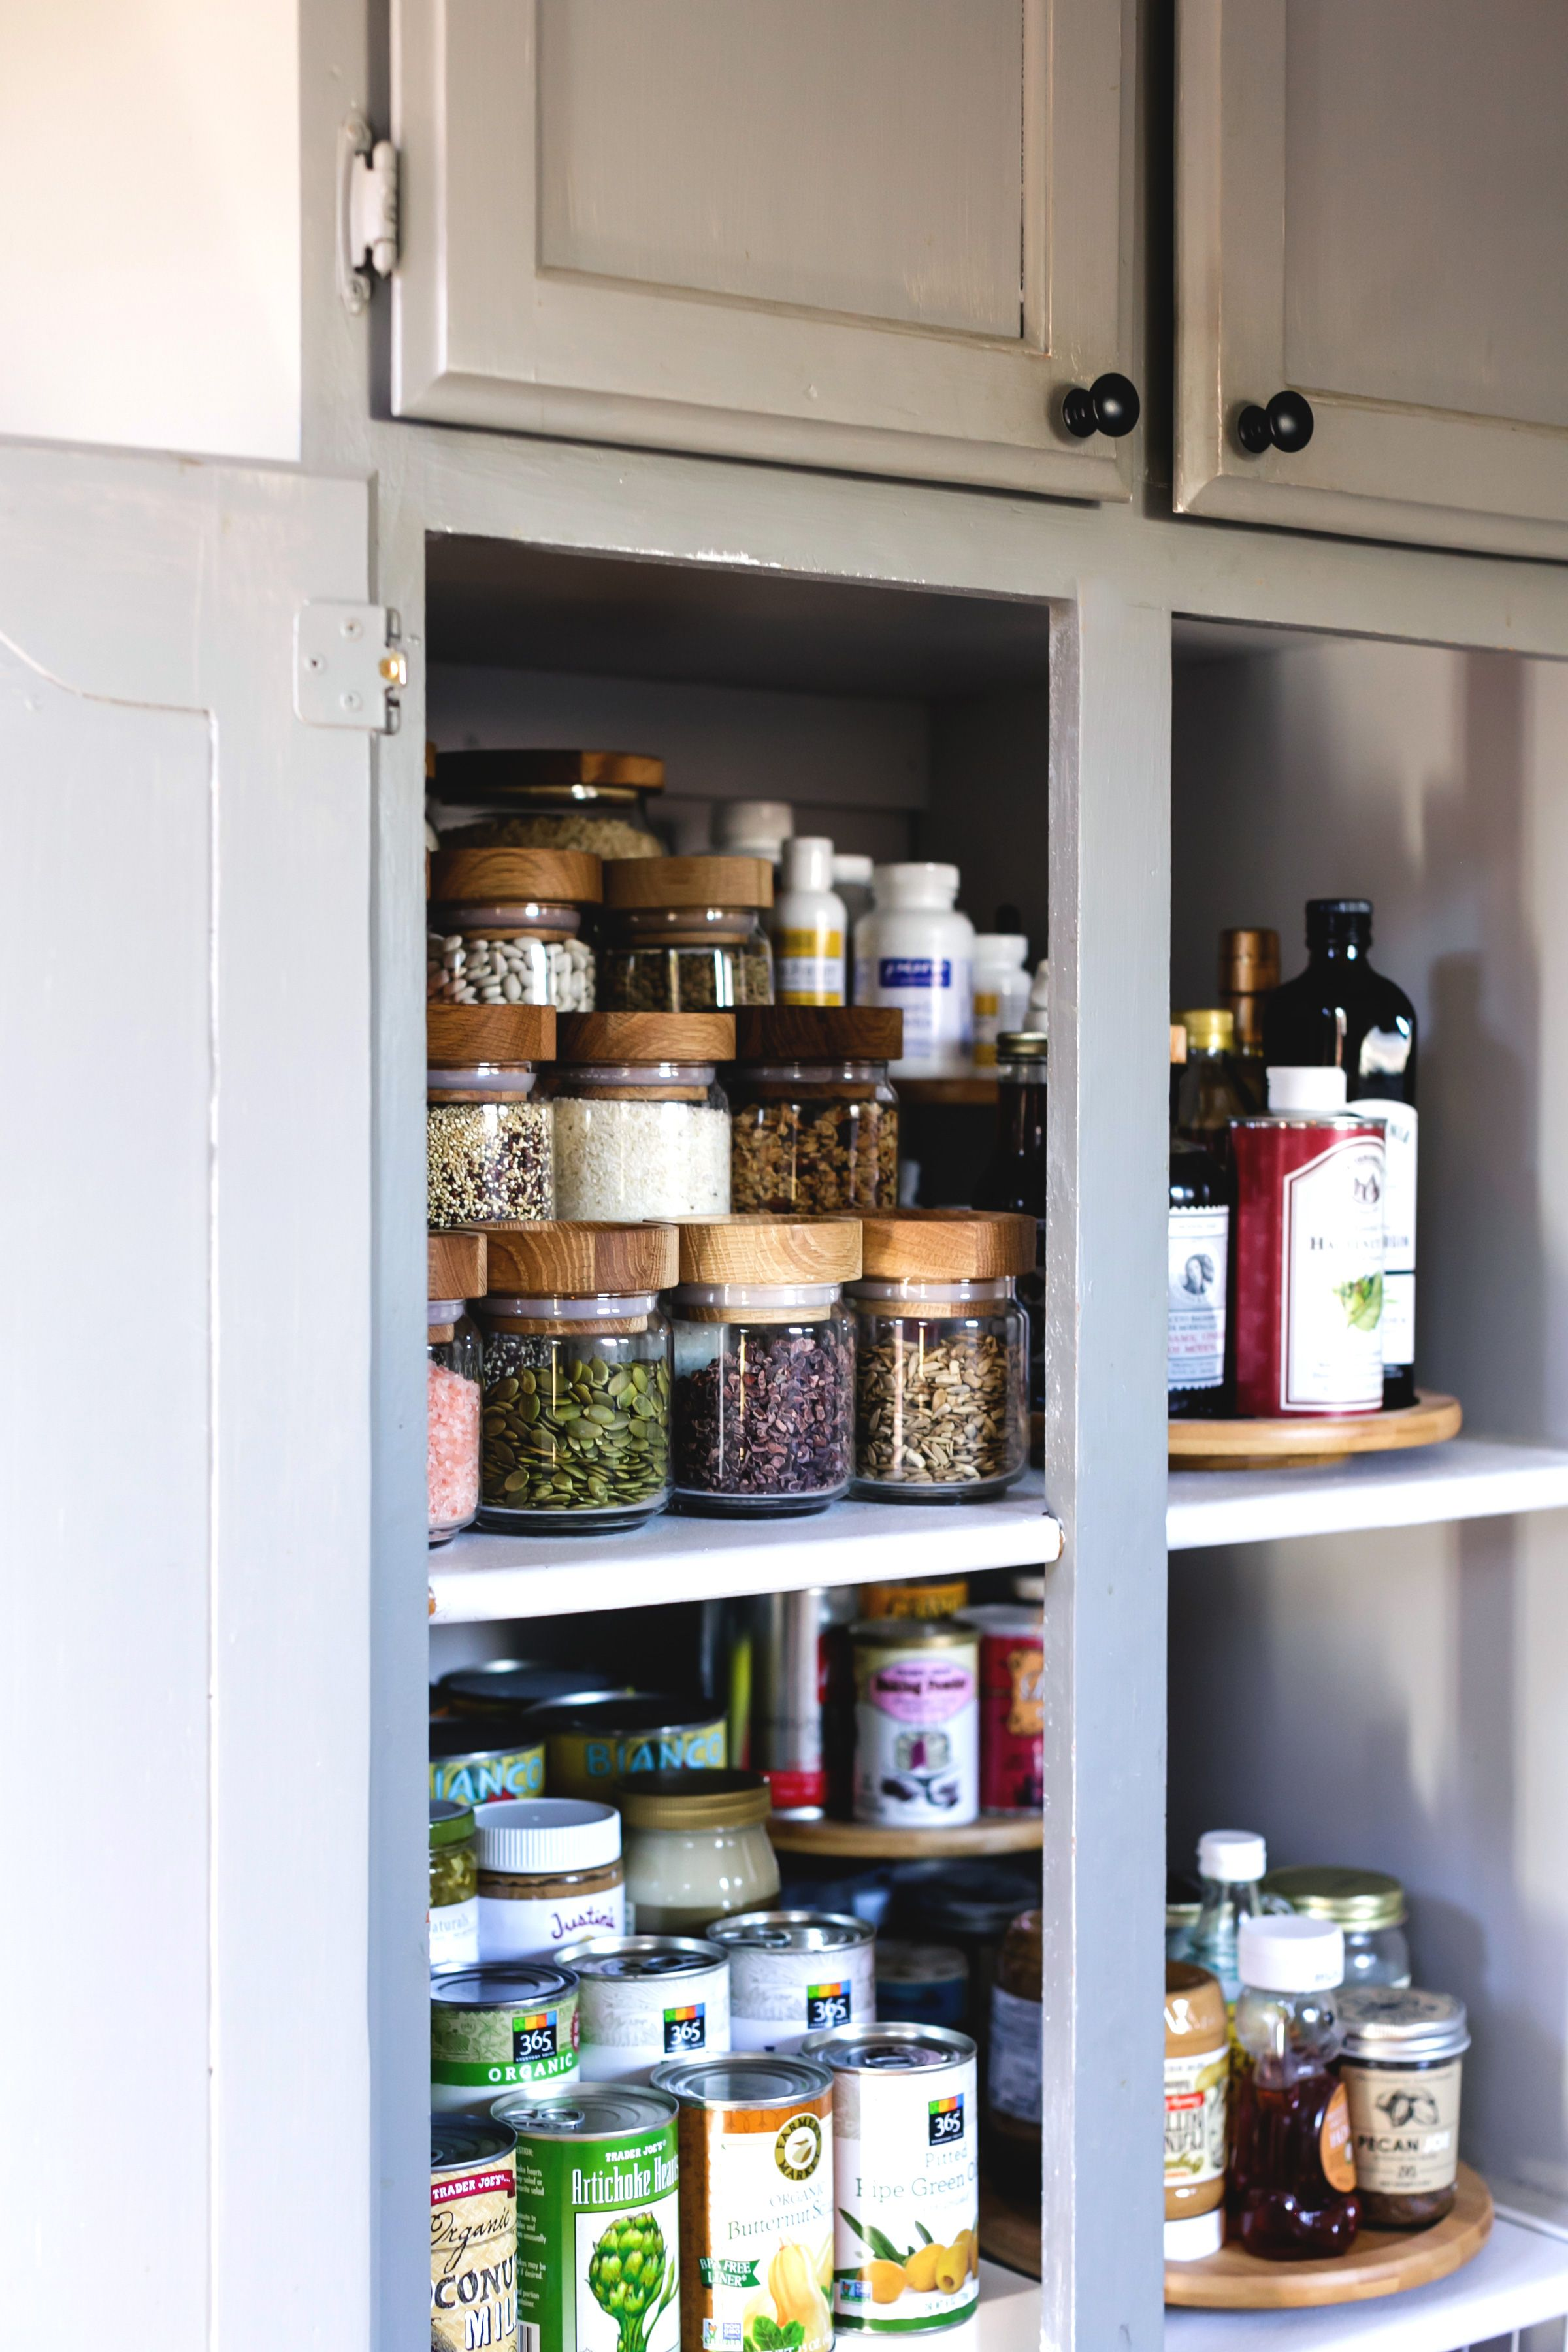 Whitehaven Pantry Redo And Inspiration: A Pantry Organization Makeover With Method